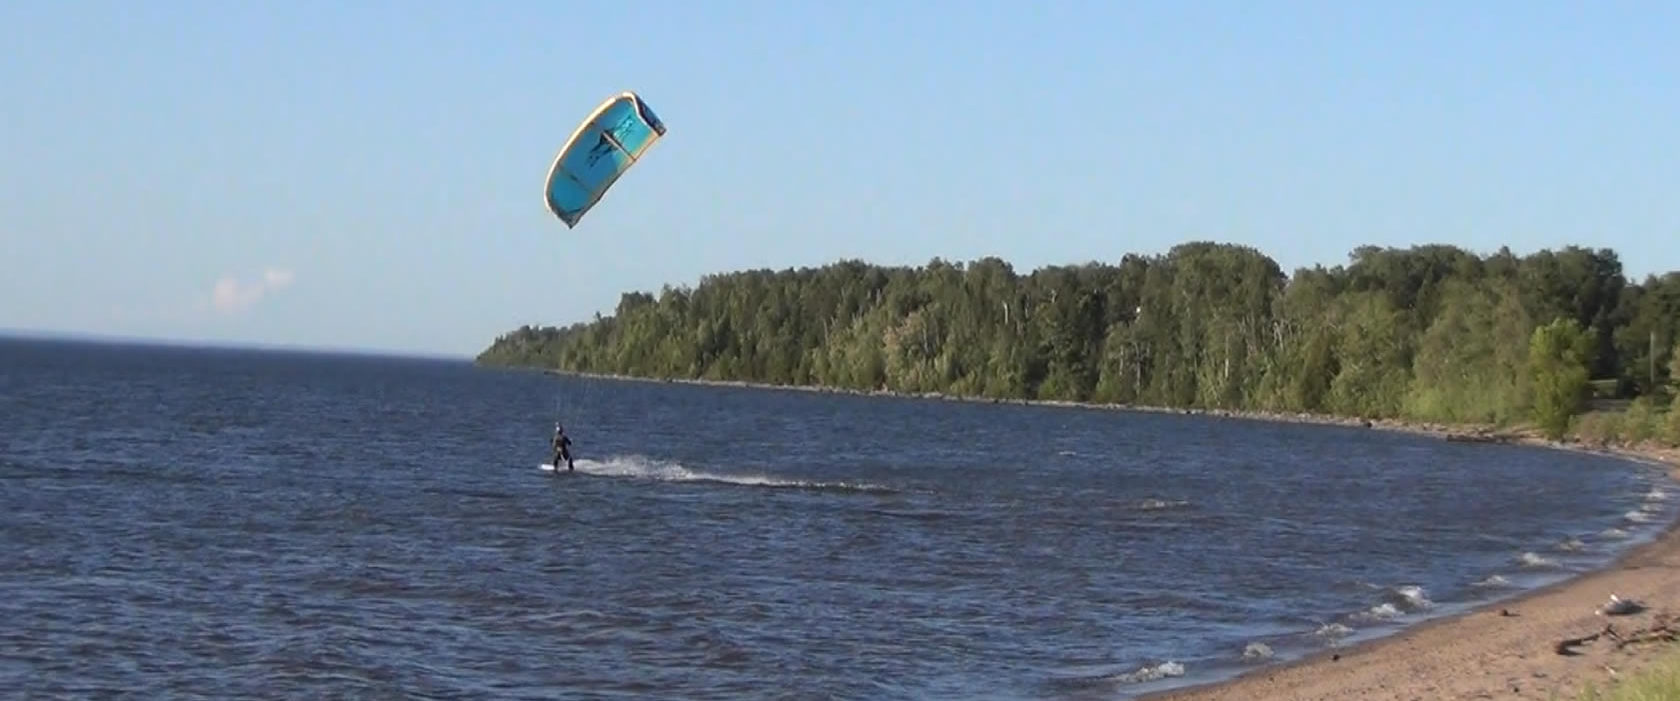 Wind surfing on Lake Superior at Herbster, Wisconsin